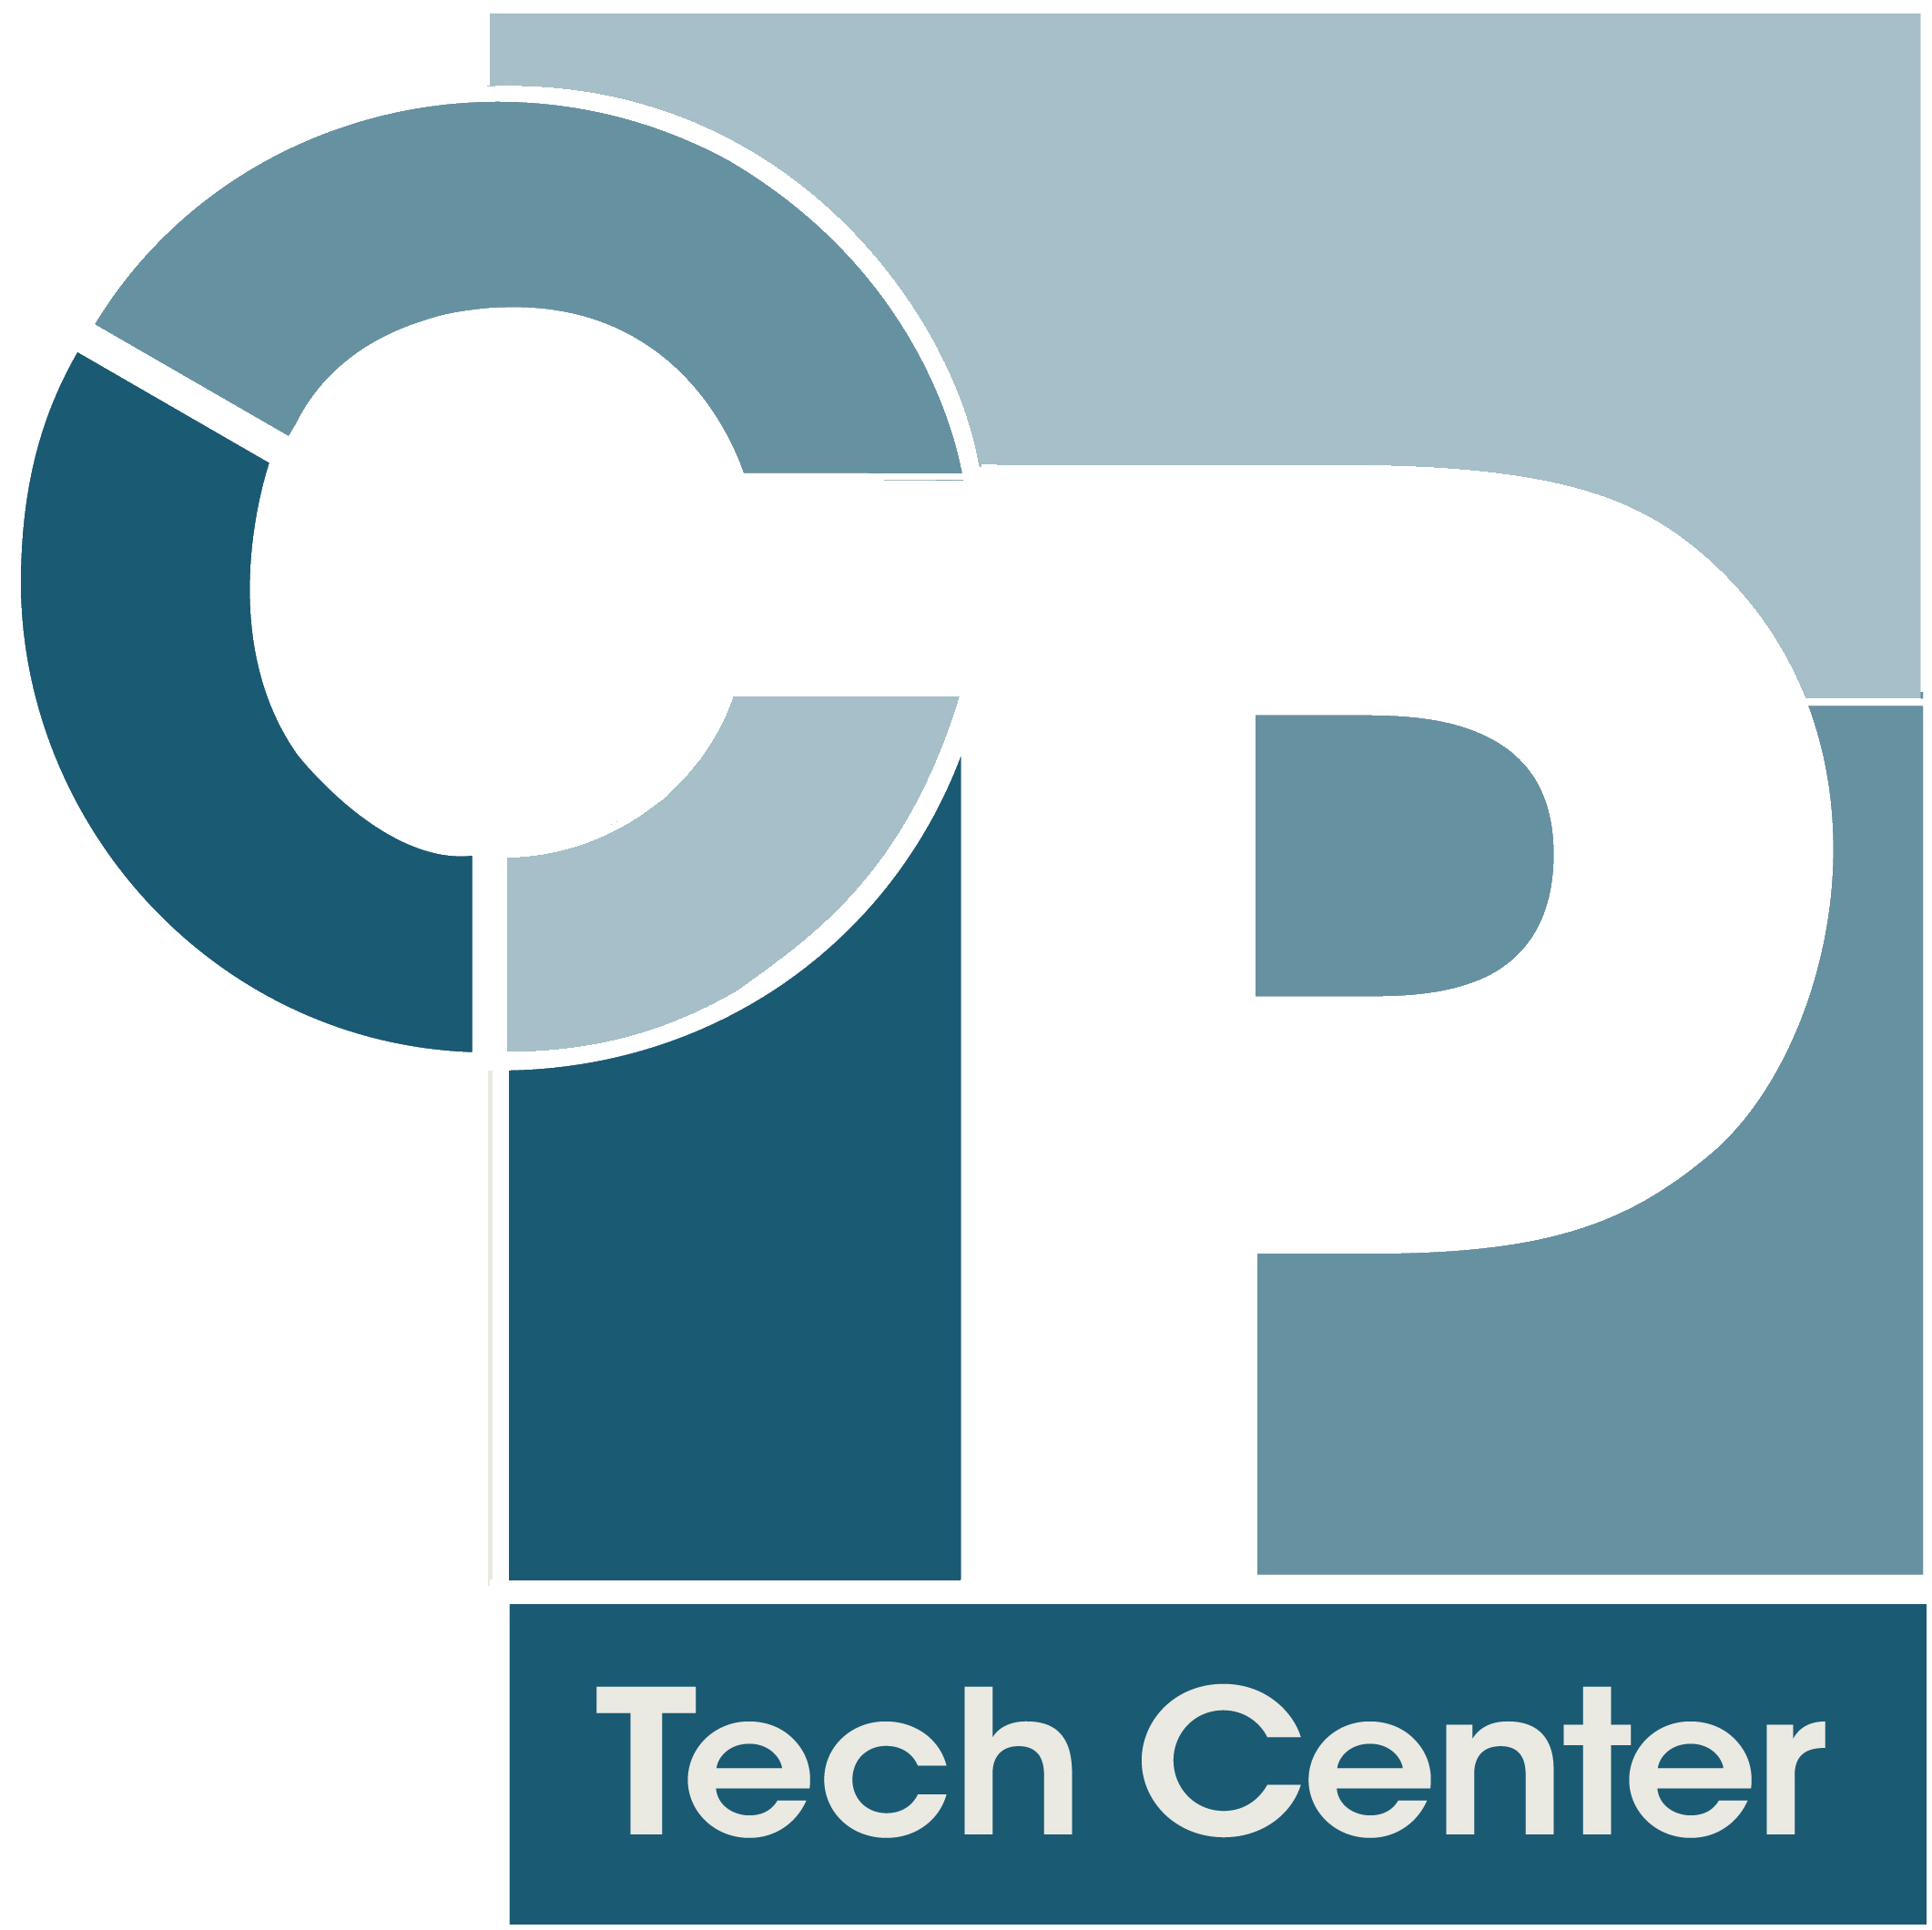 National concrete pavement american. Technology clipart technology center